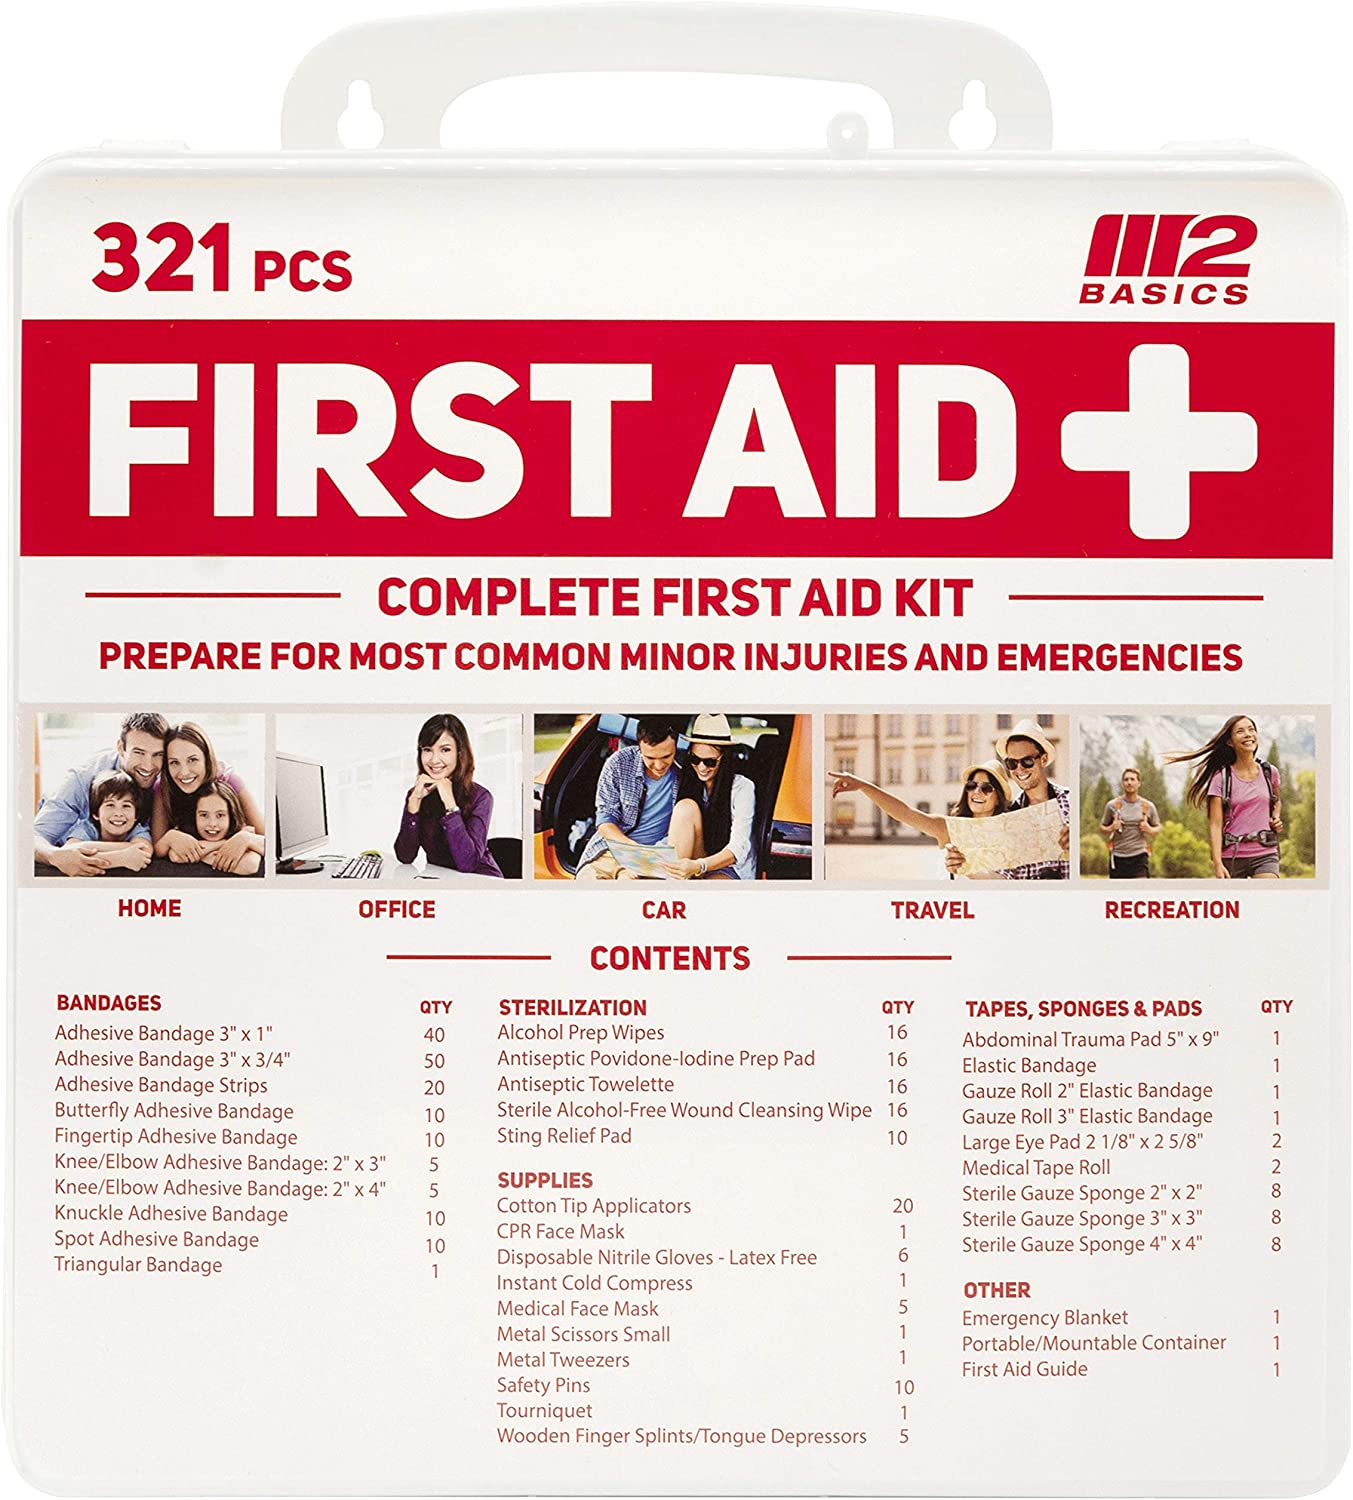 M2 BASICS 321 Piece Emergency Survival First Aid Kit | Medical Supply | Home, Office, Outdoors, Car, Camping, Travel : Sports & Outdoors